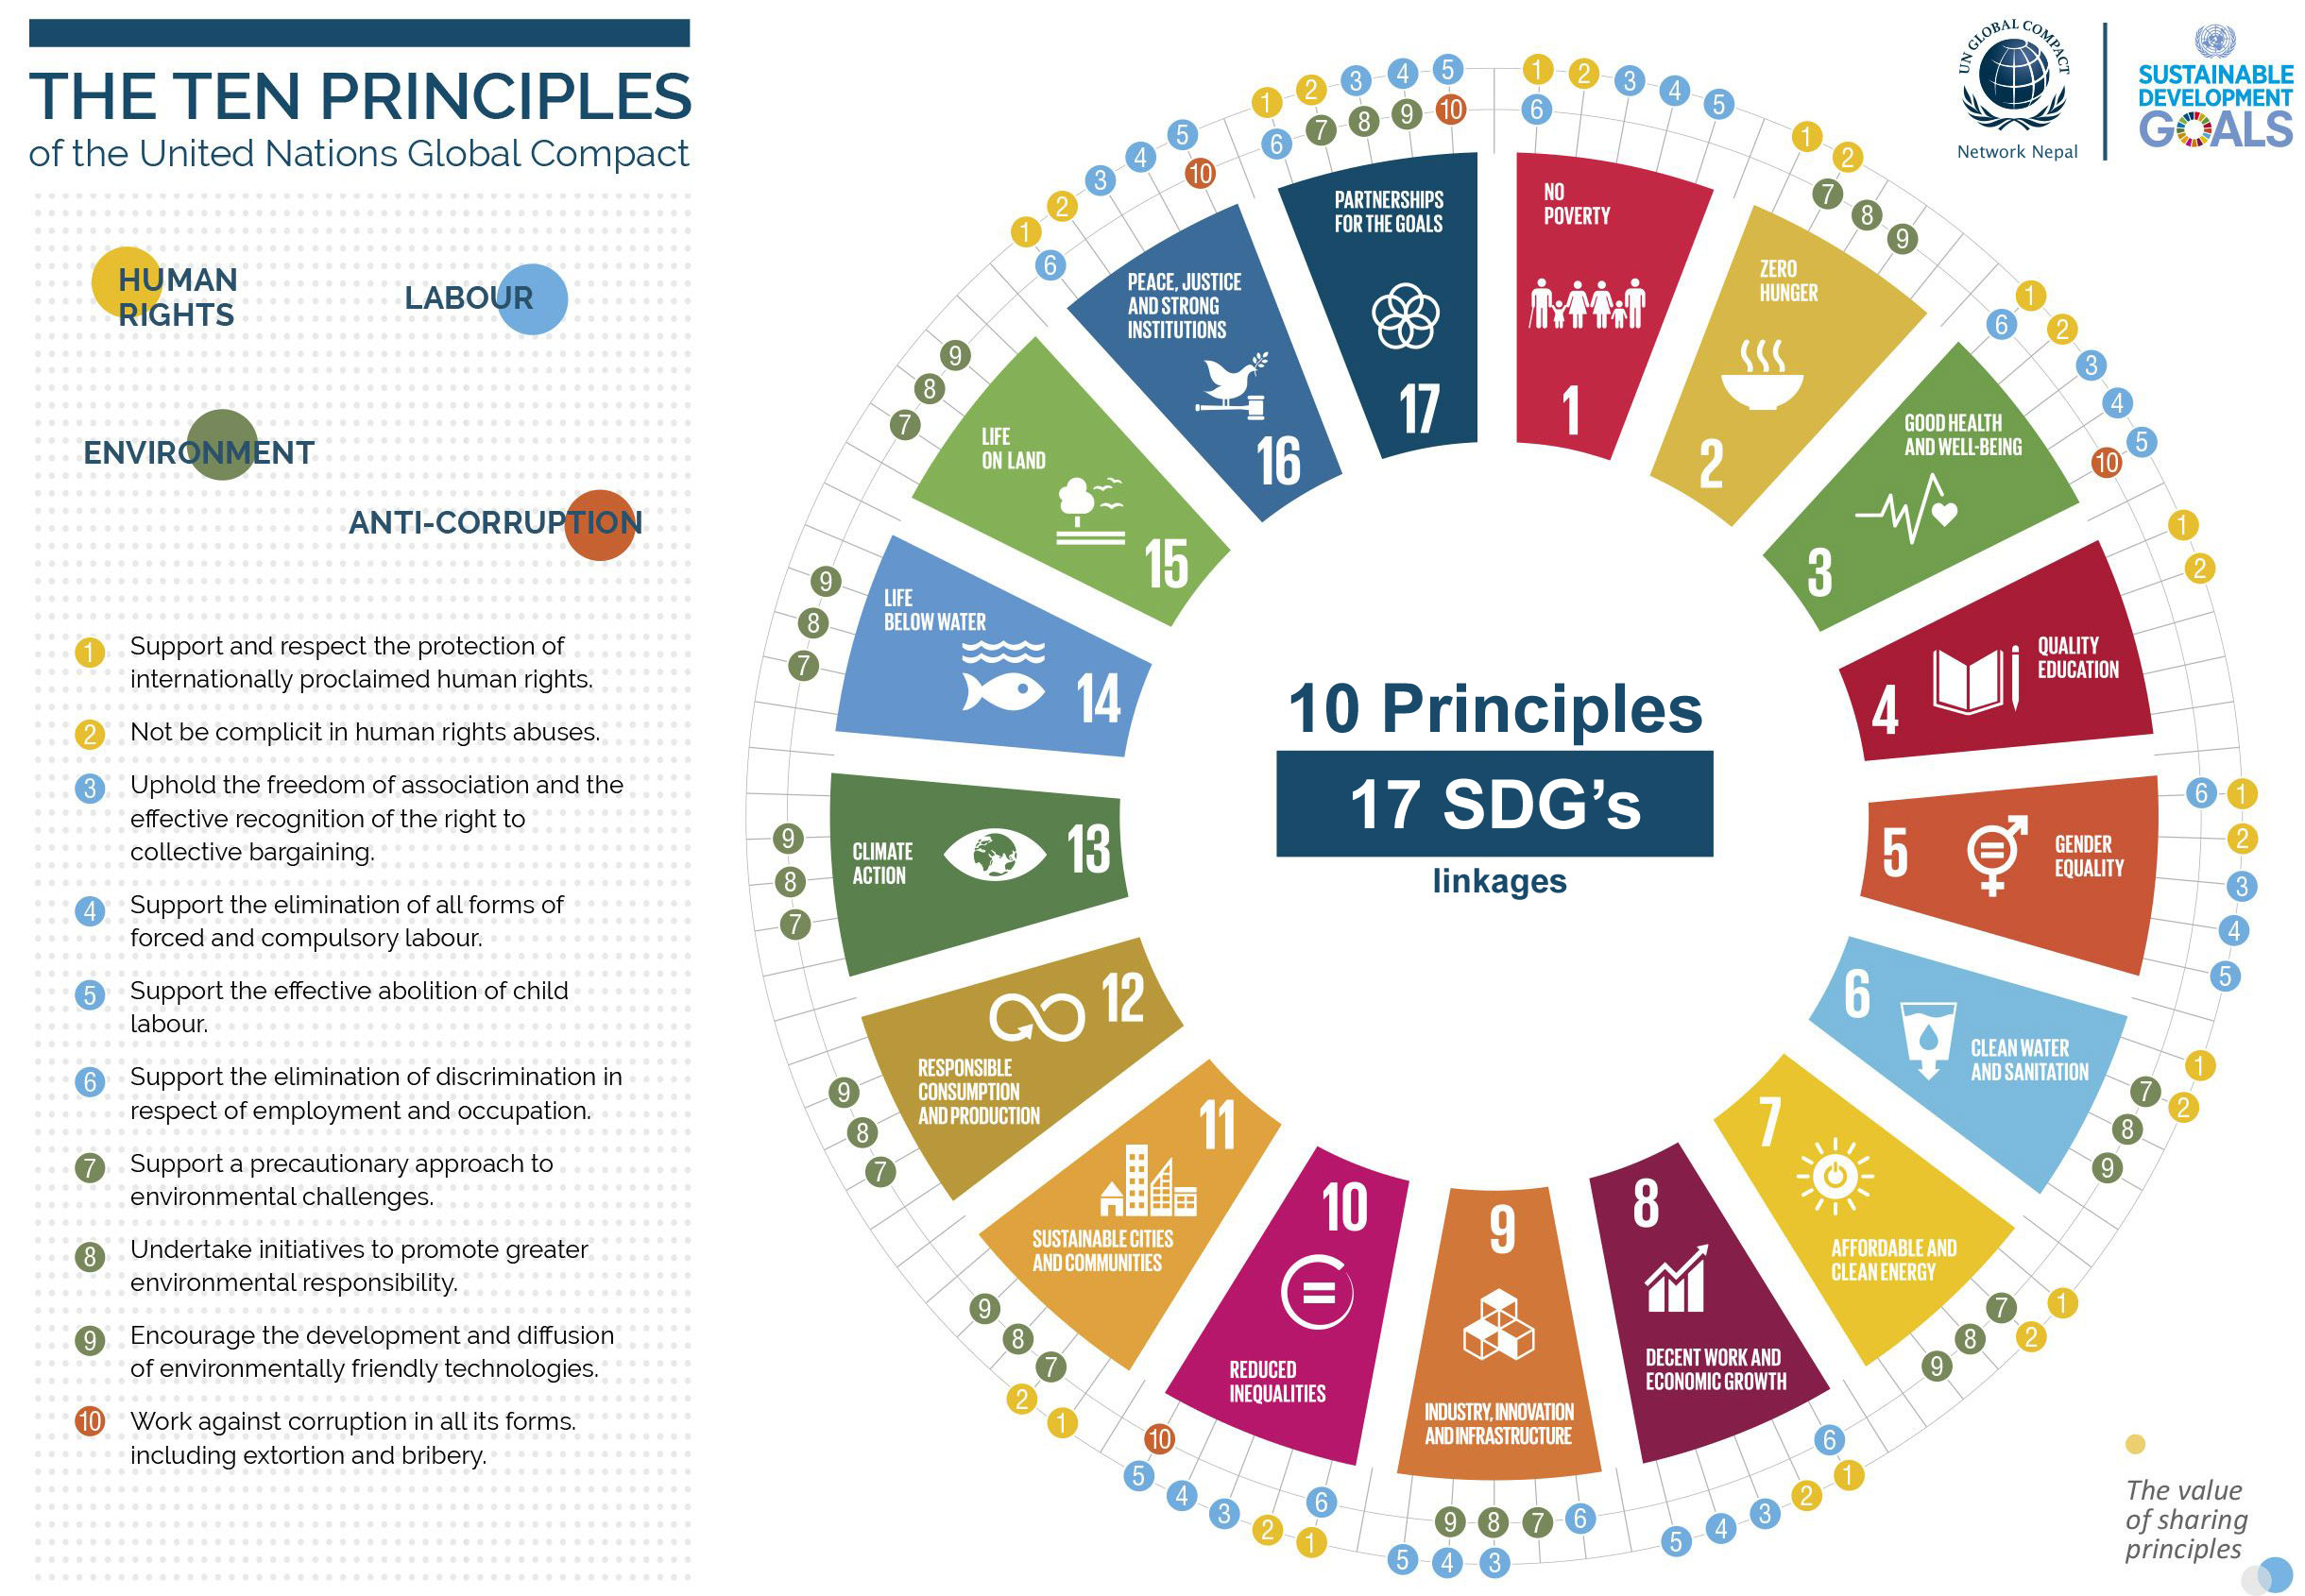 10 principles and 17 sdgs linkages